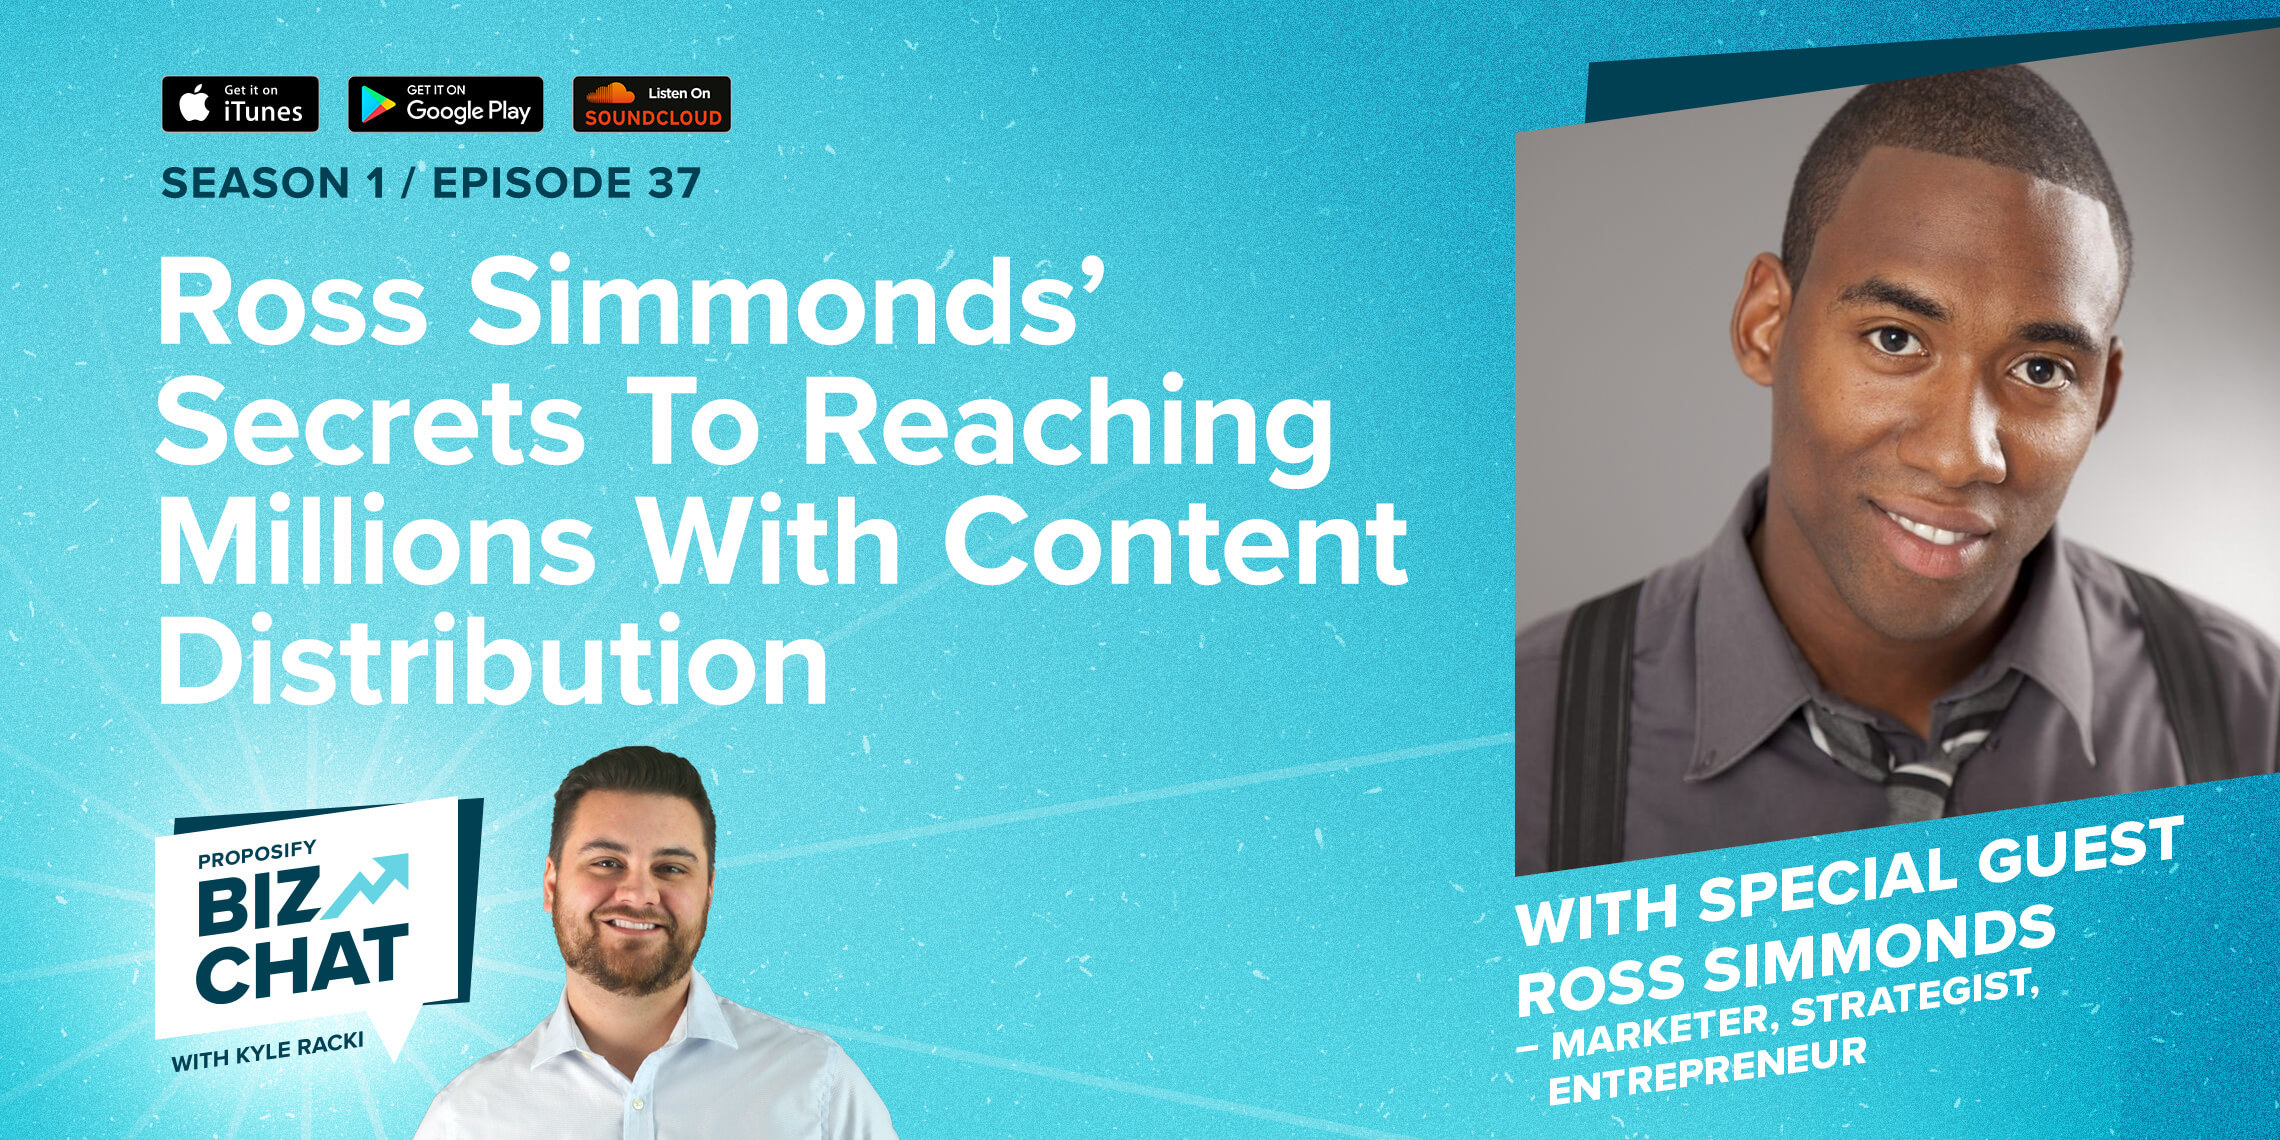 Ross Simmonds' Secrets to Reaching Millions with Content Distribution